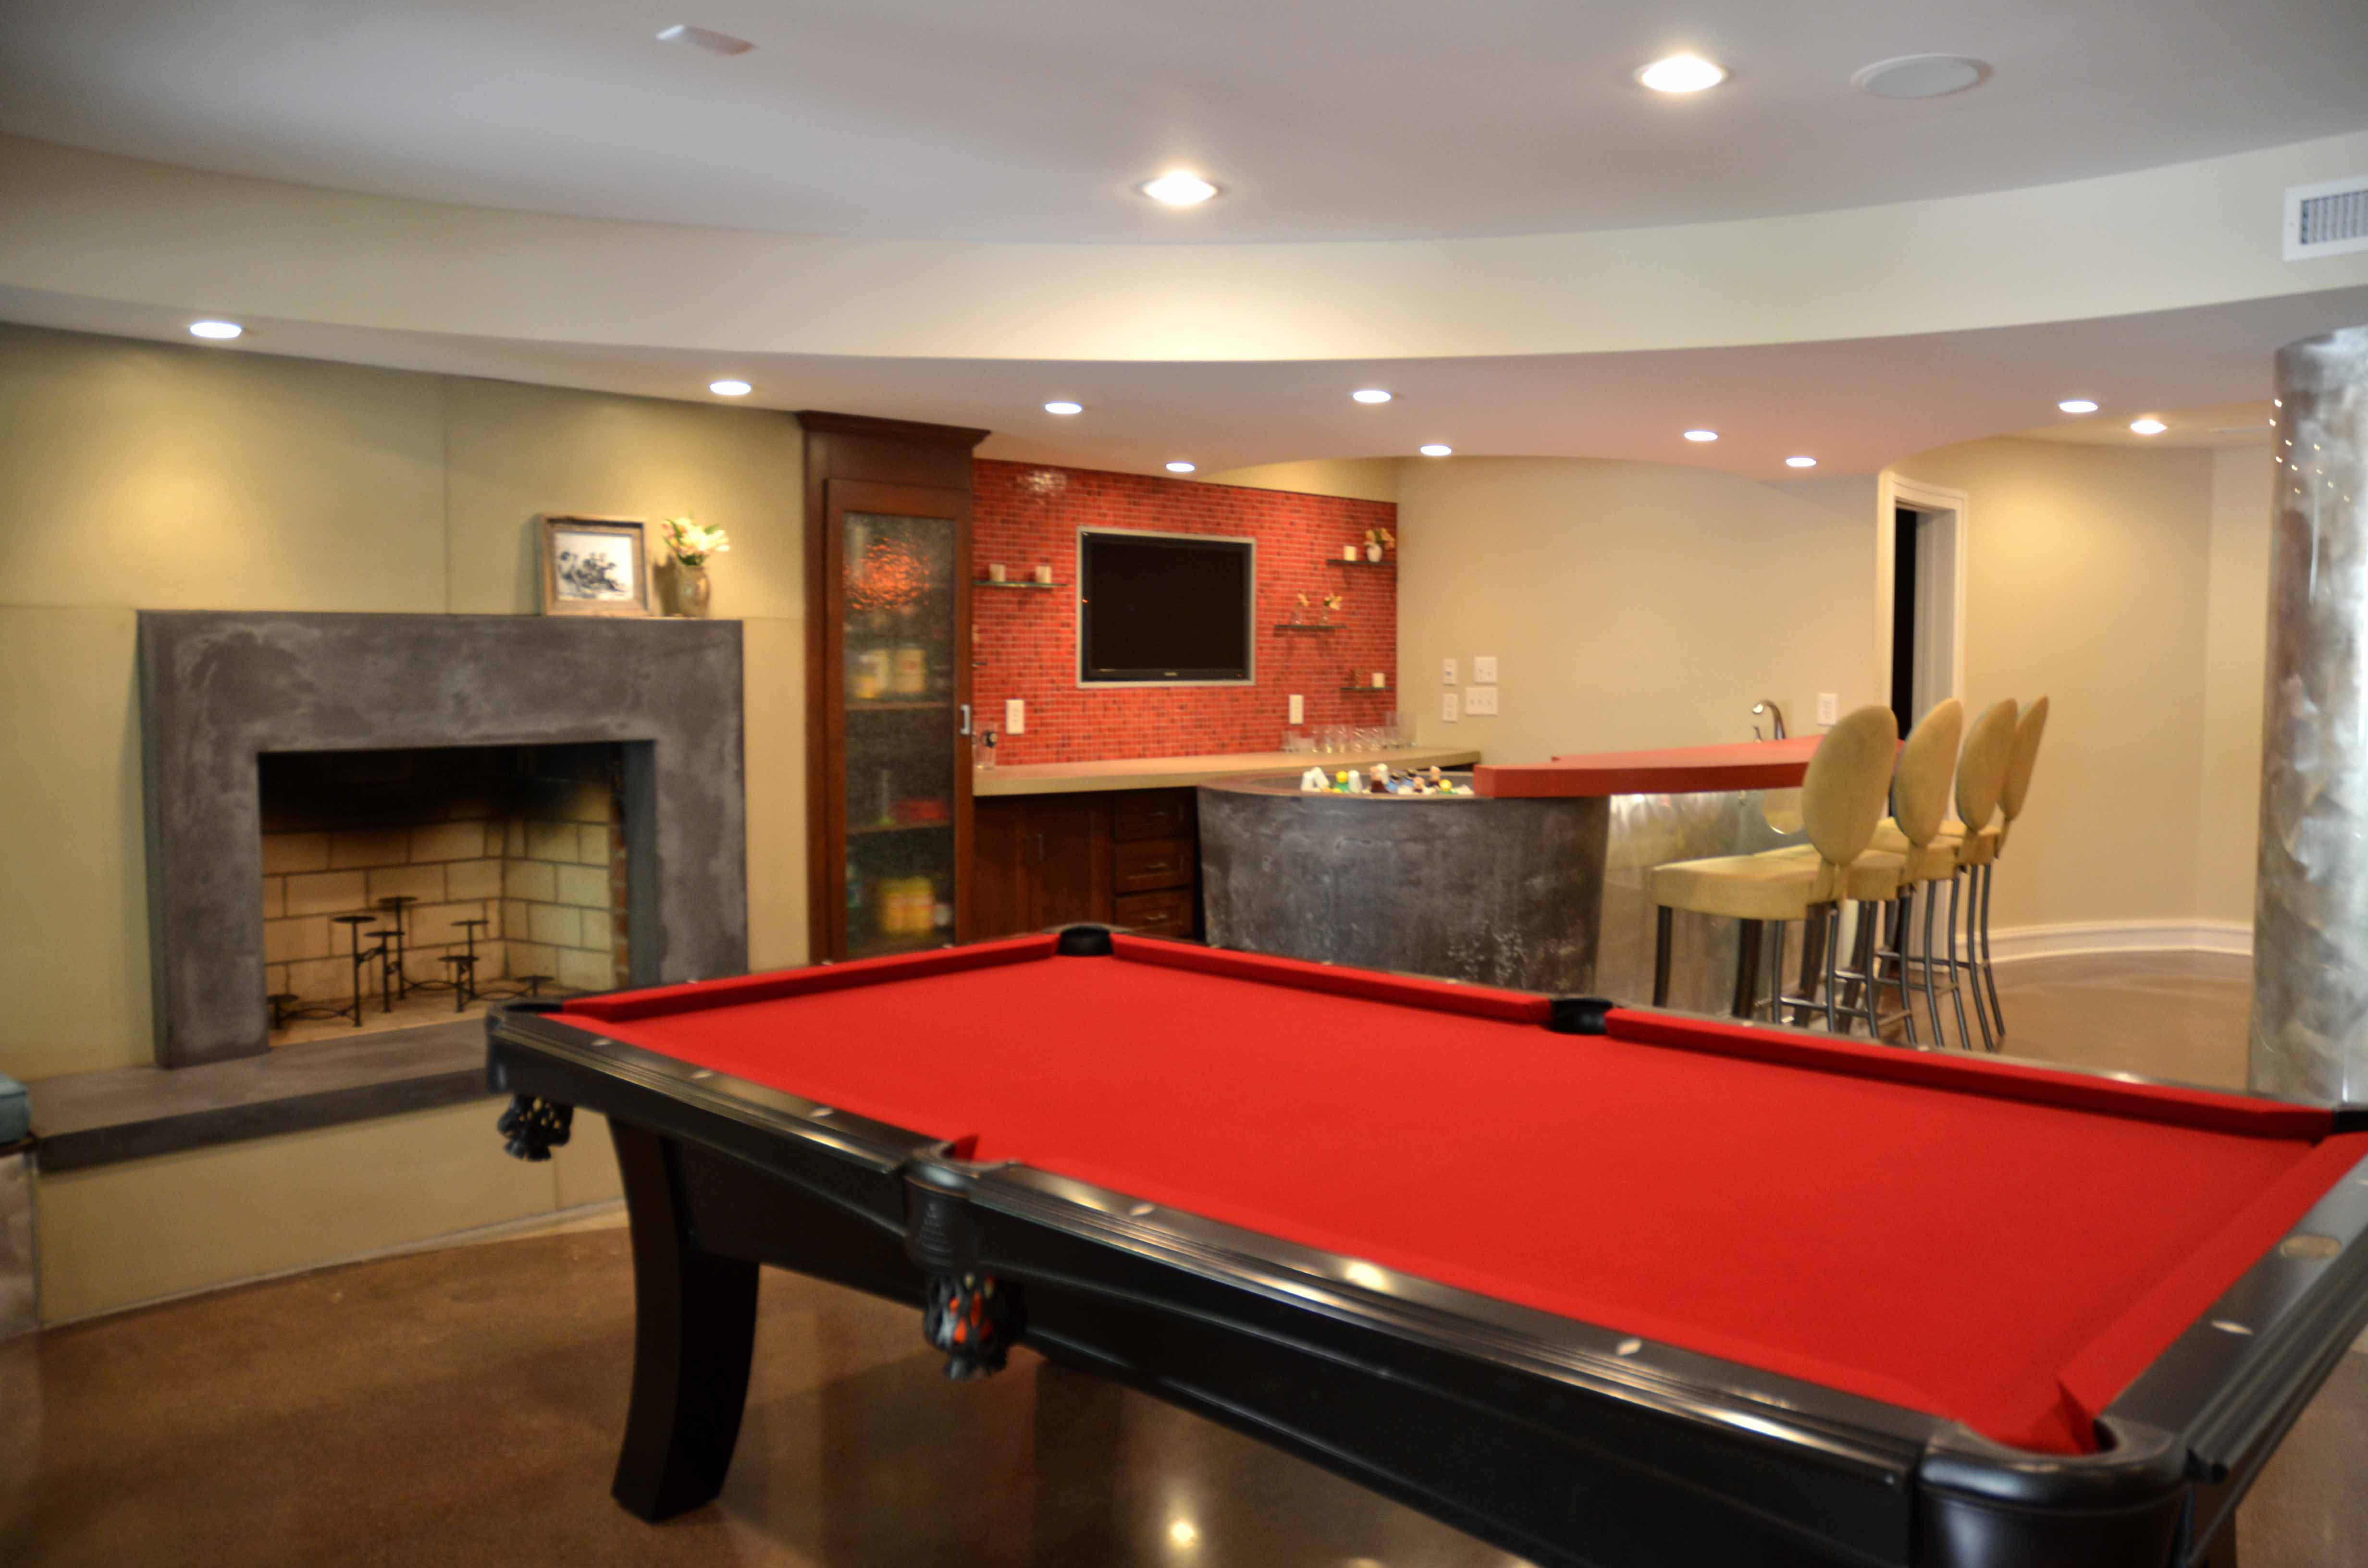 Fun functional basements make the most of below ground space central virginia home magazine - Cool basement ideas for kids ...